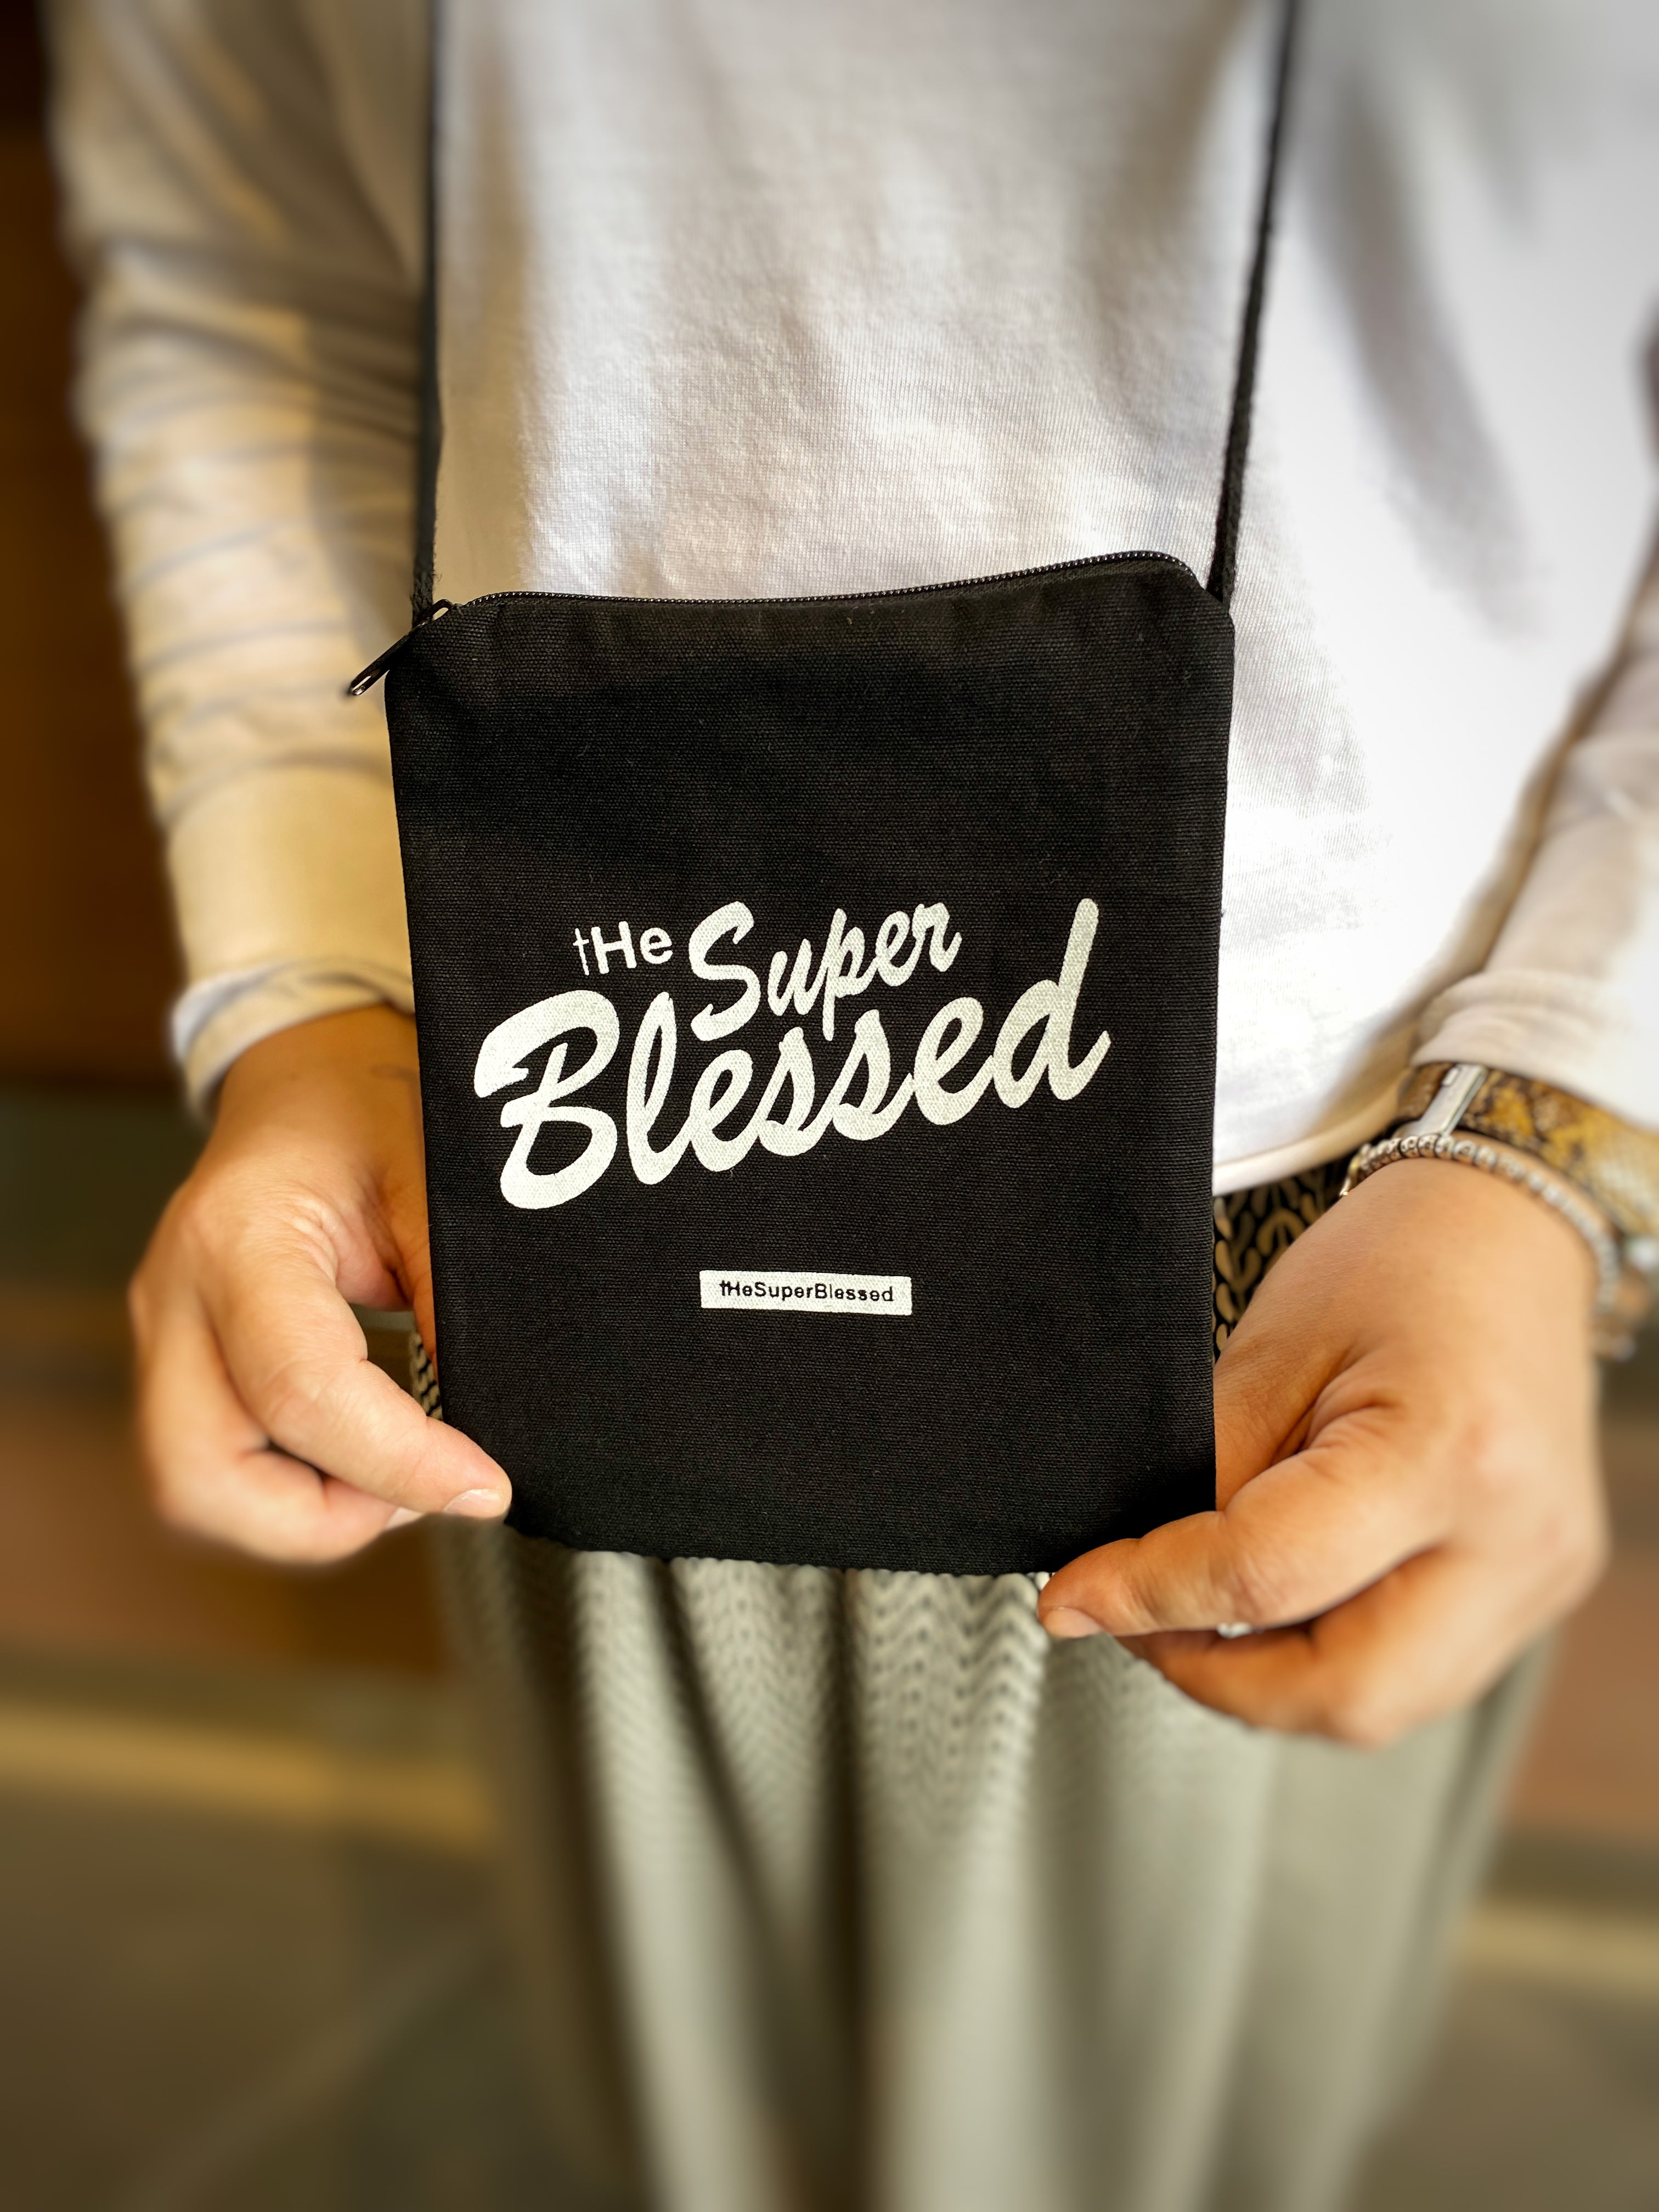 ROCKONLINE | New Creation Church | Joseph Prince | The Super Blessed Neck Sling Pouch | Accessories | Fashion | Apparel | Youth | Teen | Boys | Girls | Scriptures | Blessed | Psalms 91  | Embroidery | Christian Gifts | The Super Blessed | Rock Bookshop | Rock Bookstore | Star Vista | Free Delivery for Singapore Orders above $50.